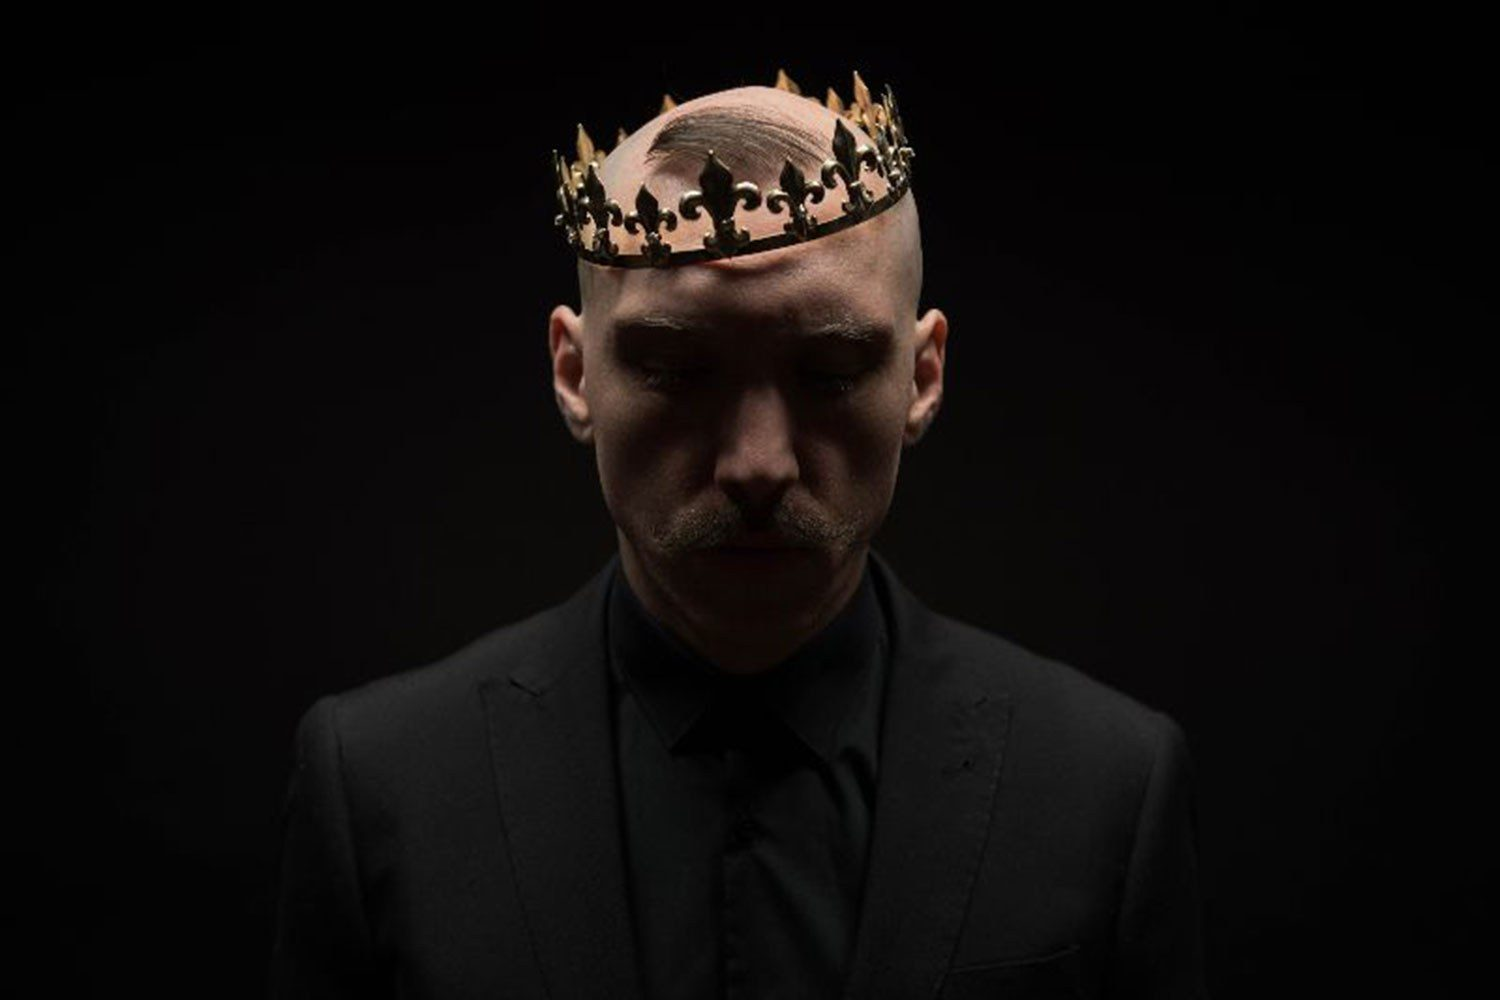 Jamie Lenman is going to perform a couple of acoustic shows in East London